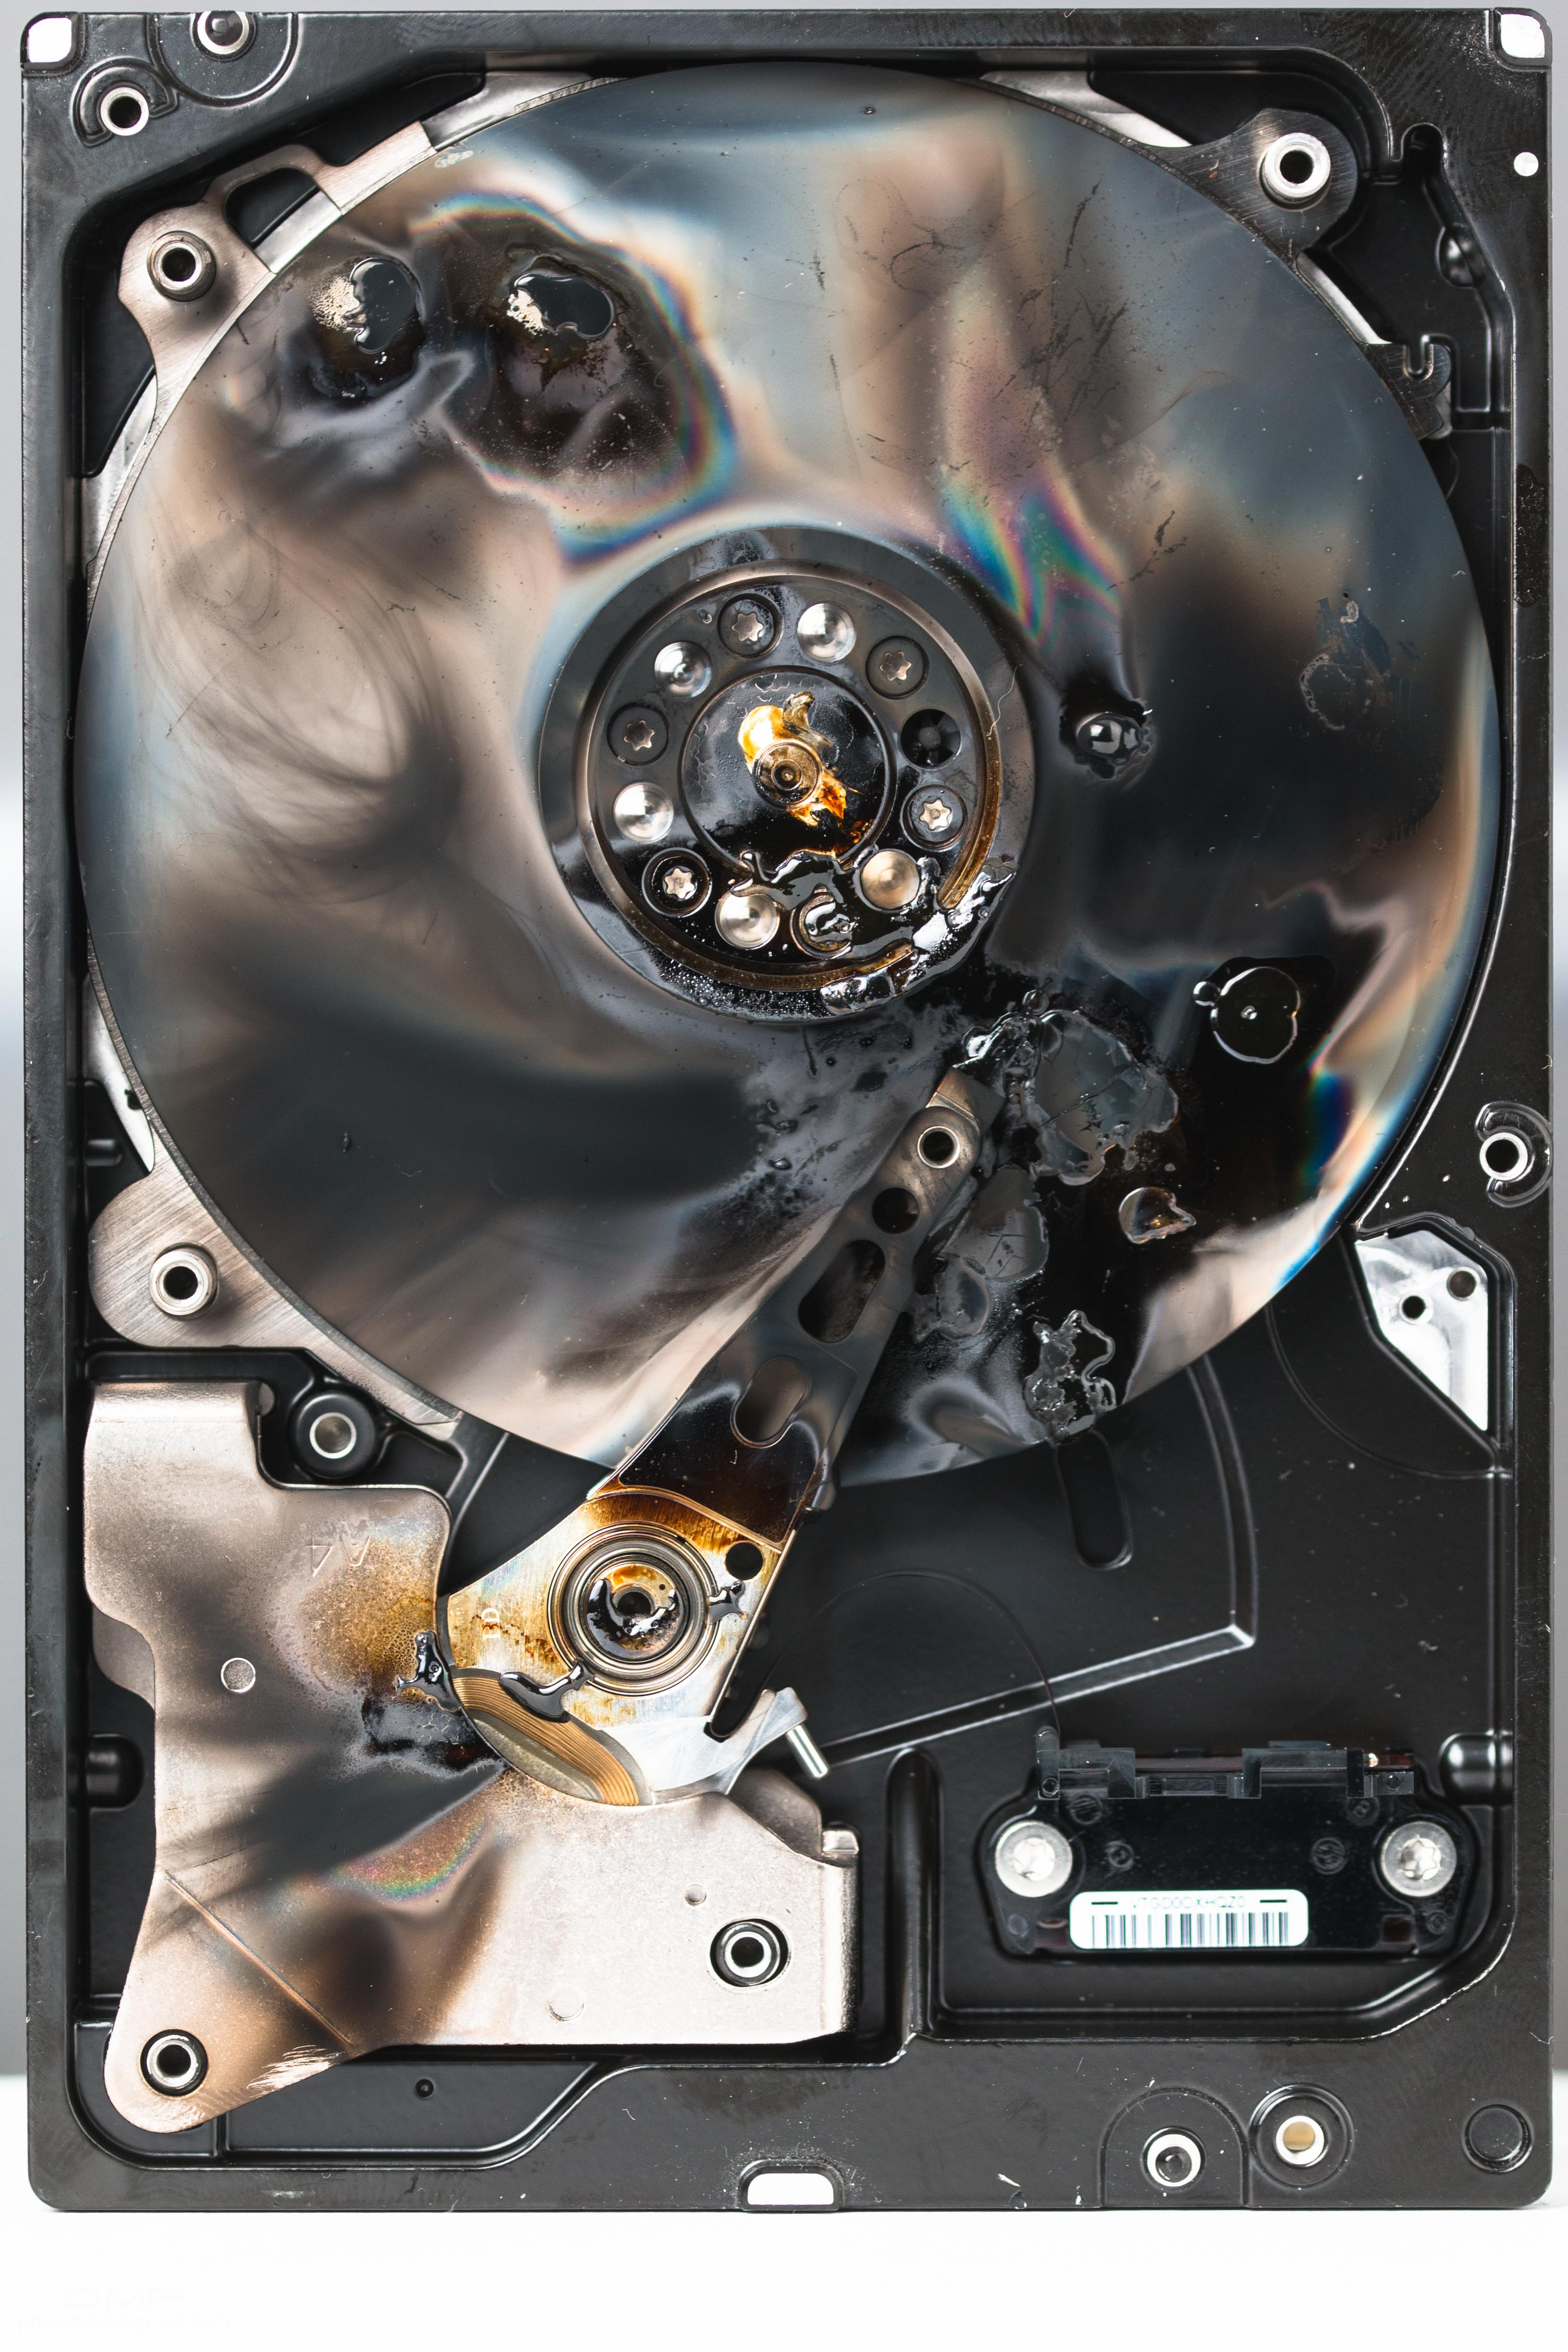 How to destroy a hard drive so that the data cannot be accessed any longer